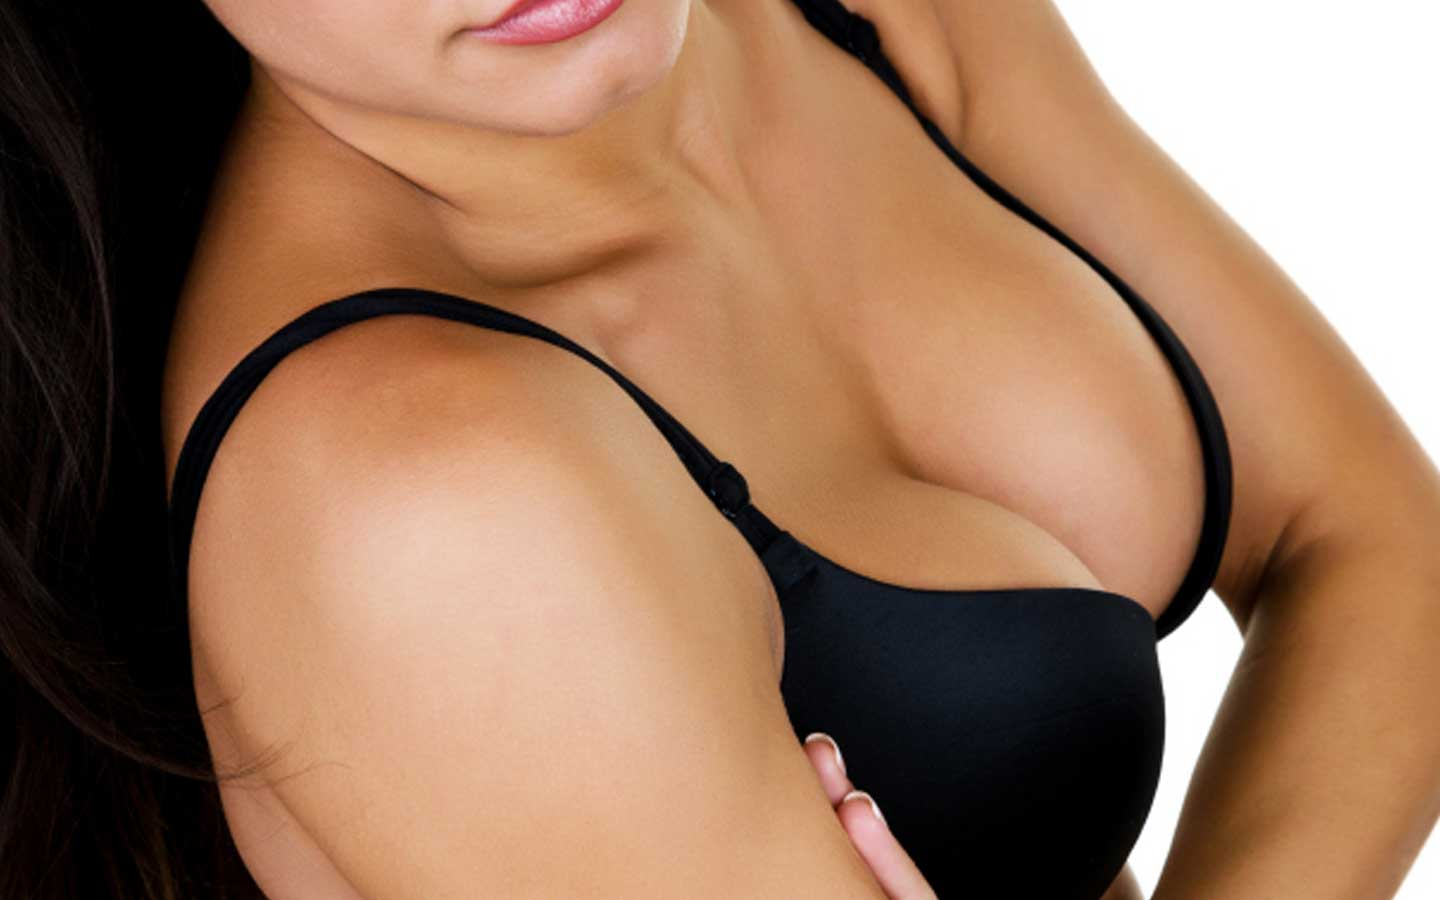 w Soon After a Breast Augmentation Can You Work Out - Berman Cosmetic Surgery Blog